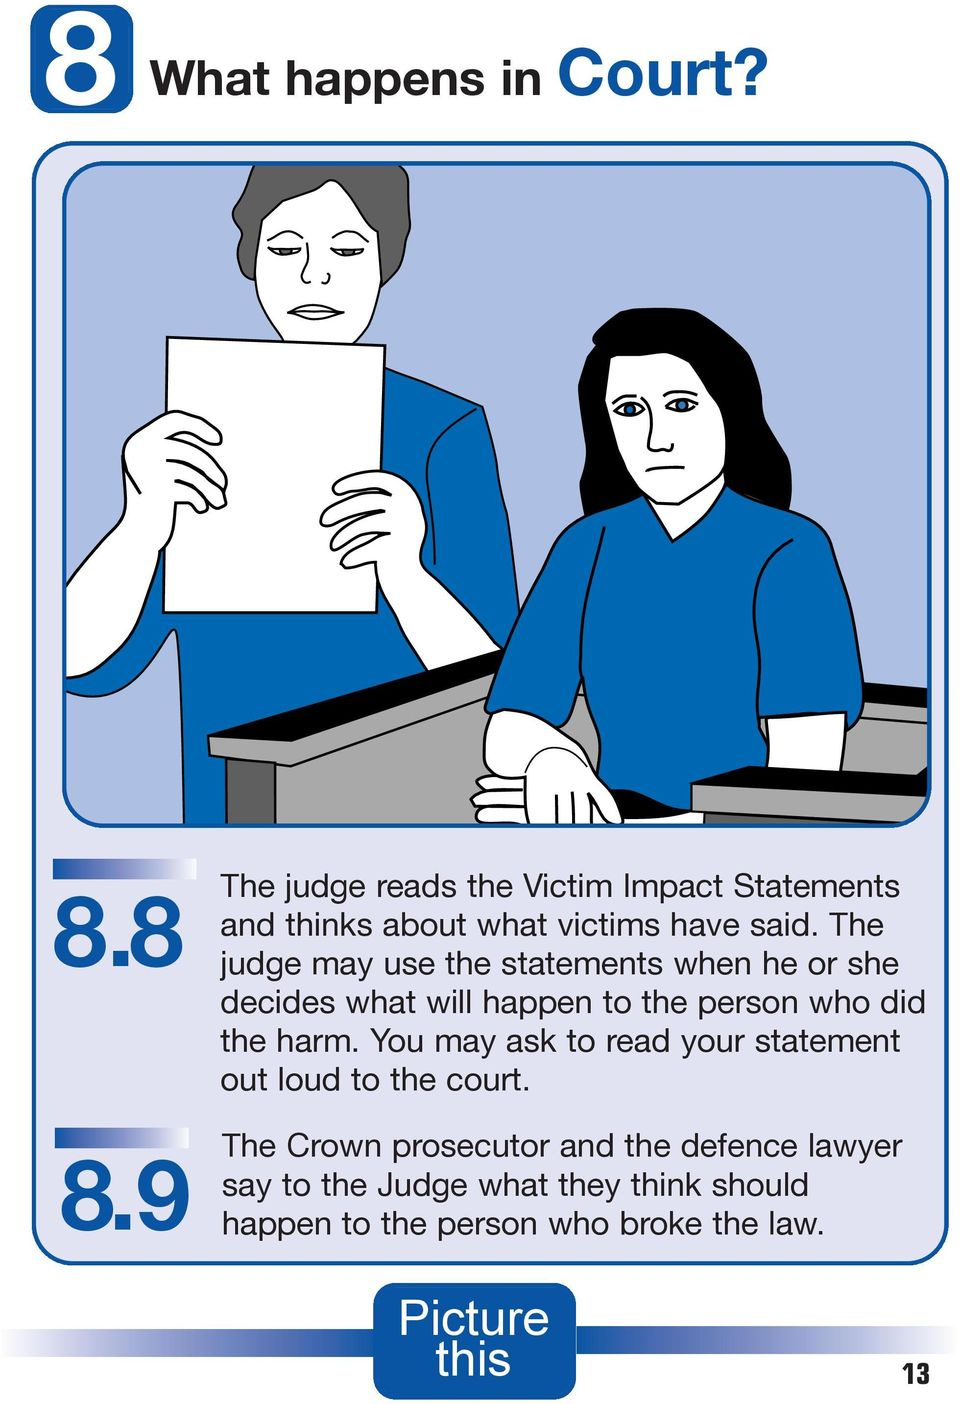 The judge may use the statements when he or she decides what will happen to the person who did the